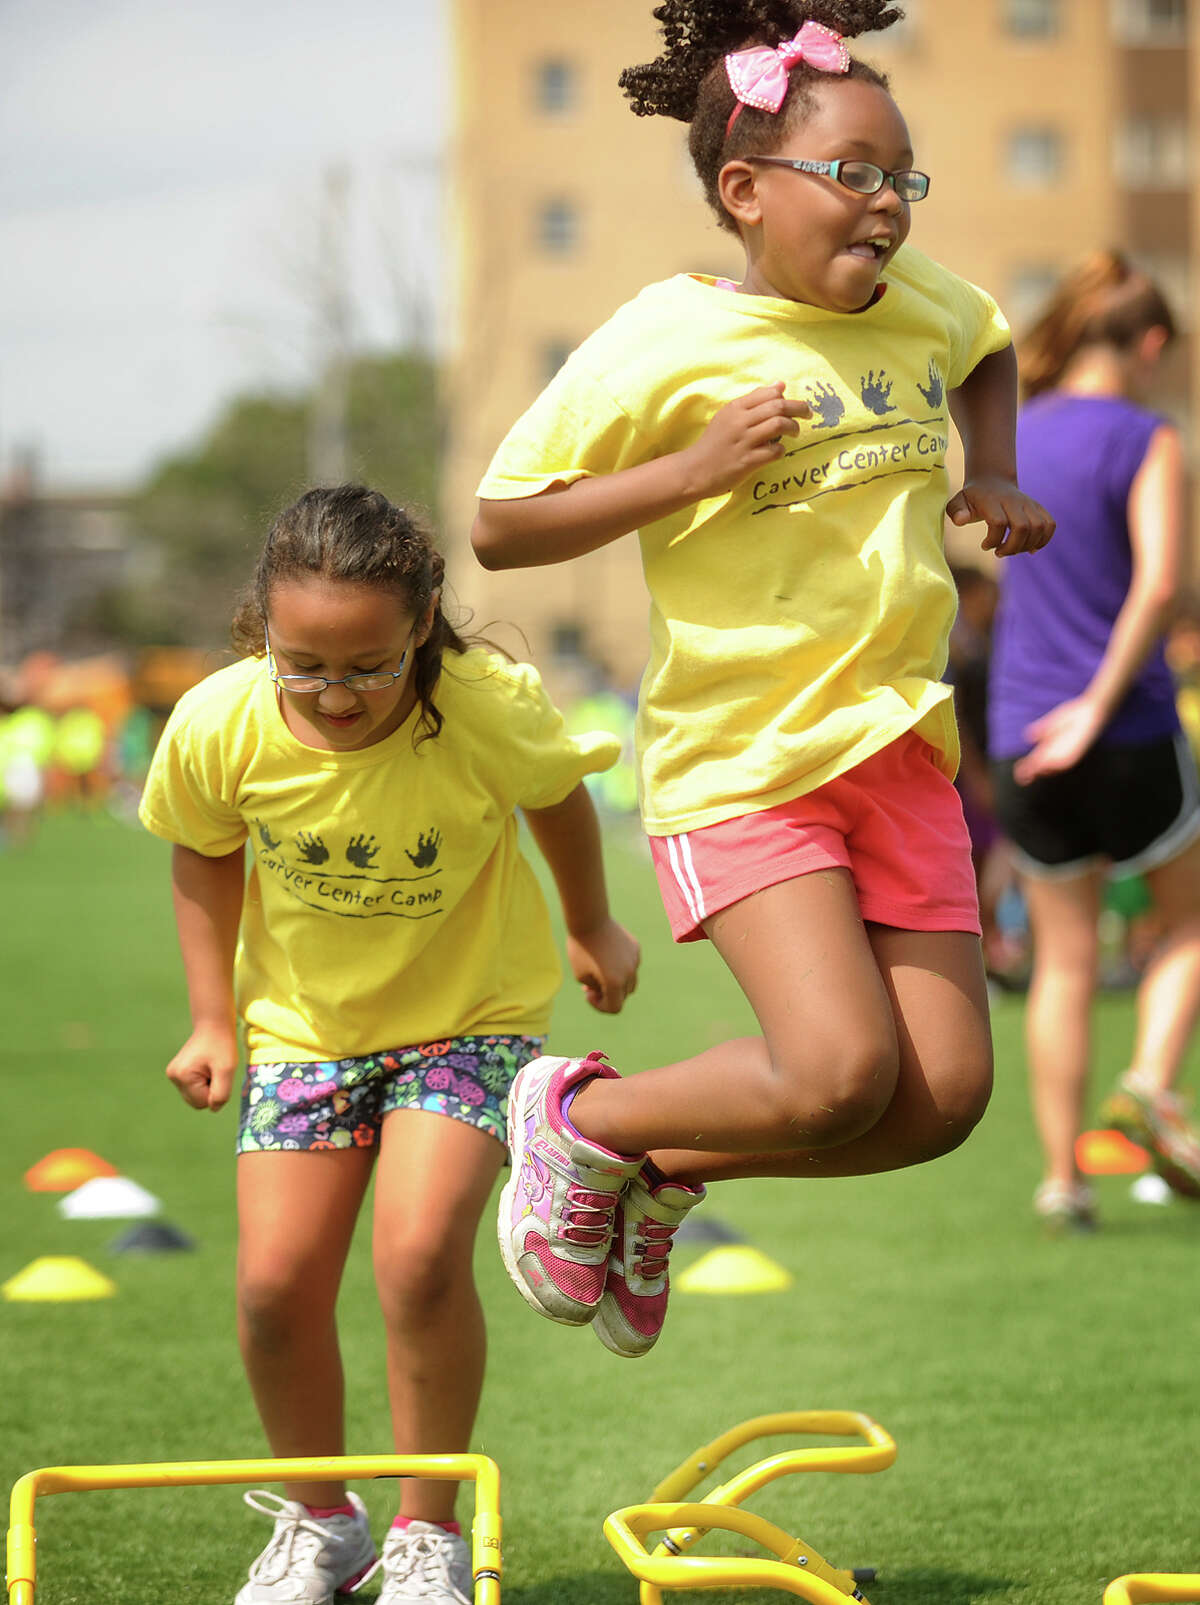 Carver Center Camp campers Nicole Salazar, 7, left, and Laneese Williams, 8, both of Norwalk, take part in the Third Annual Chelsea Cohen Fitness Academy Jamboree at the University of Bridgeport on Thursday, August 8, 2013.